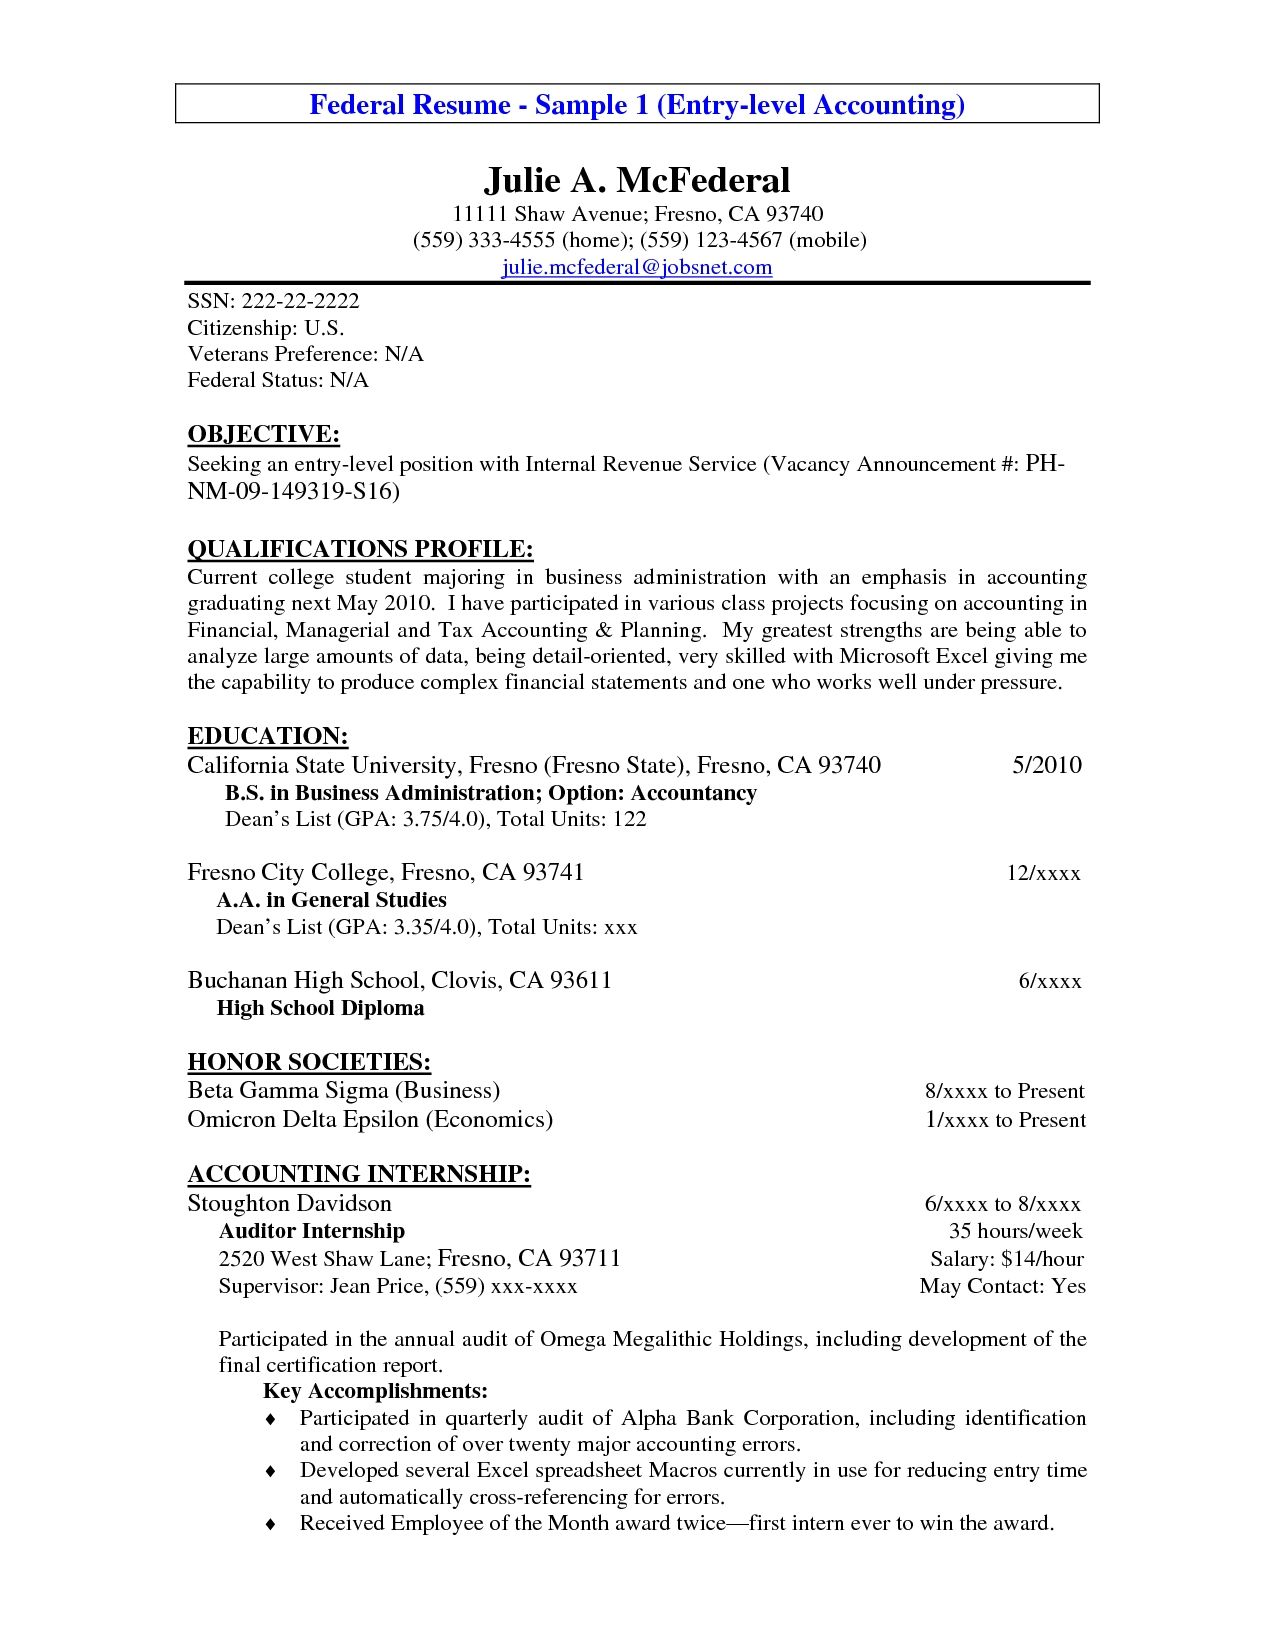 resume Resume Examples Entry Level entry level resume example accounting sample gallery photos